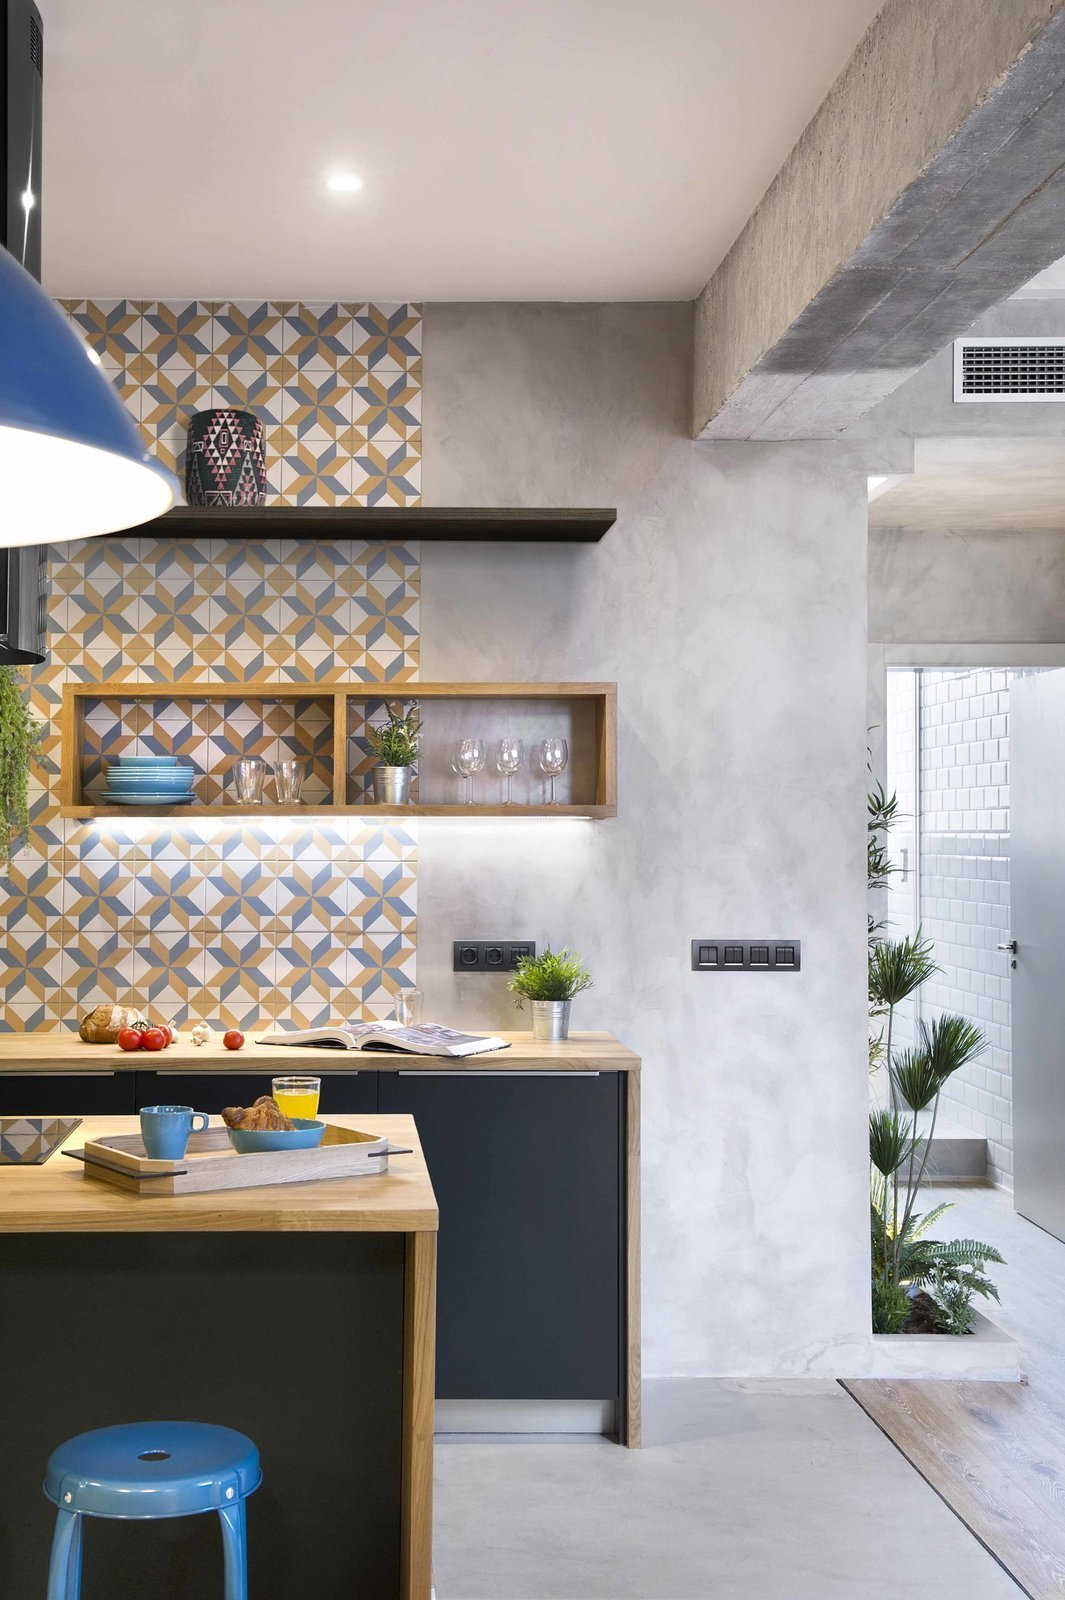 Kitchen, Wood, Cooktops, Medium Hardwood, Concrete, Ceramic Tile, Pendant, Recessed, and Open Geometric-patterned, hydraulic-imitation tiles from Portuguese brand Recer in grey, mustard, and white used for the backsplash, and a feature wall gives this Barcelona apartment plenty of vibrant charm.  Best Kitchen Cooktops Recessed Wood Open Photos from 12 Brilliant Kitchen Backsplash Ideas